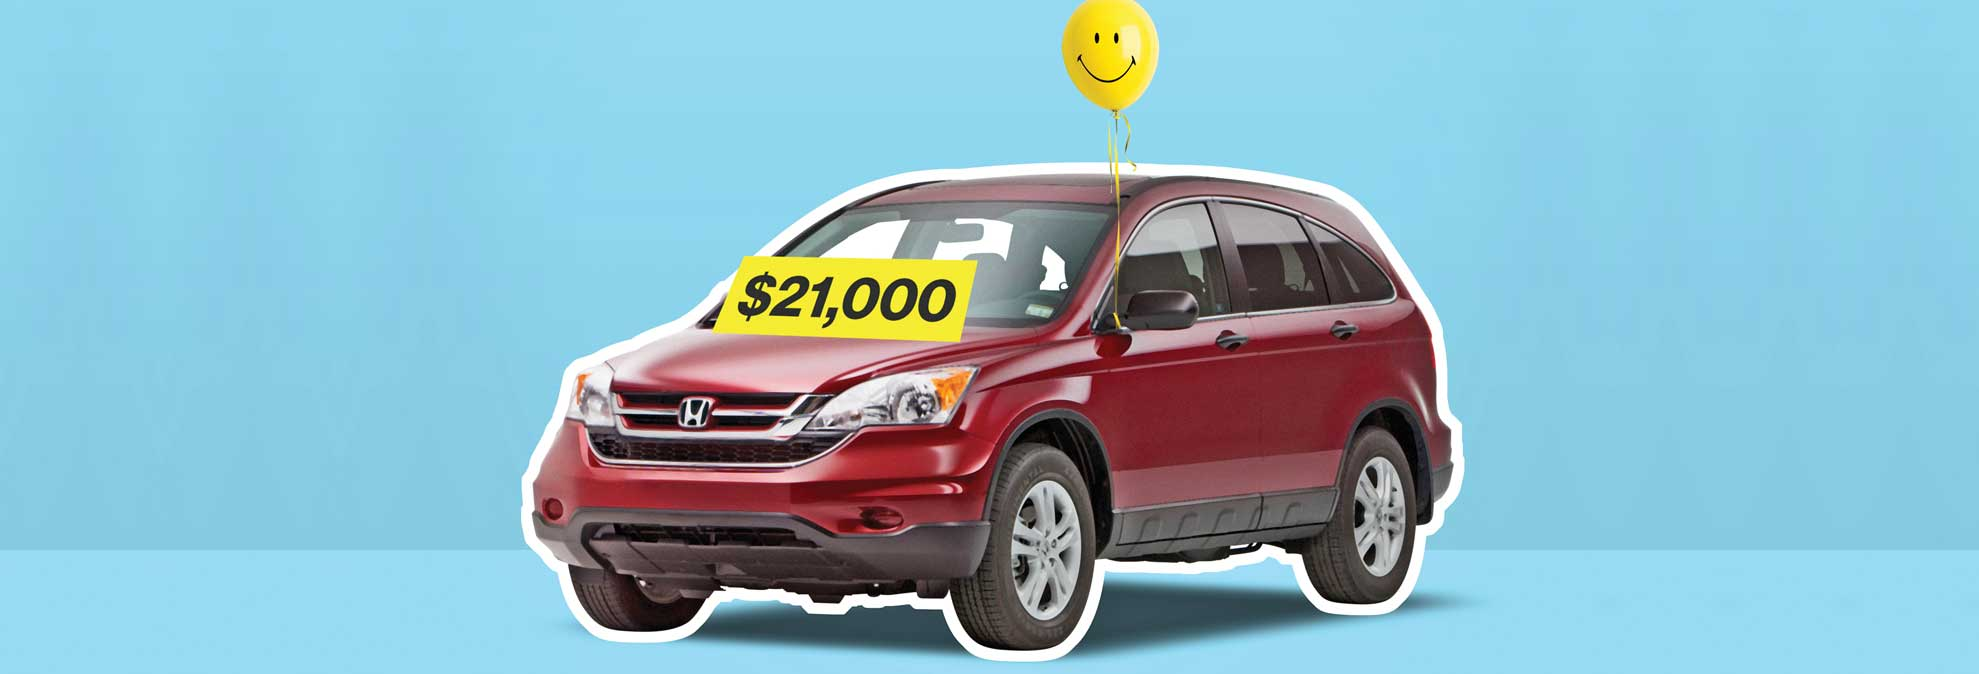 In Pursuit Of Used Car Happiness Consumer Reports